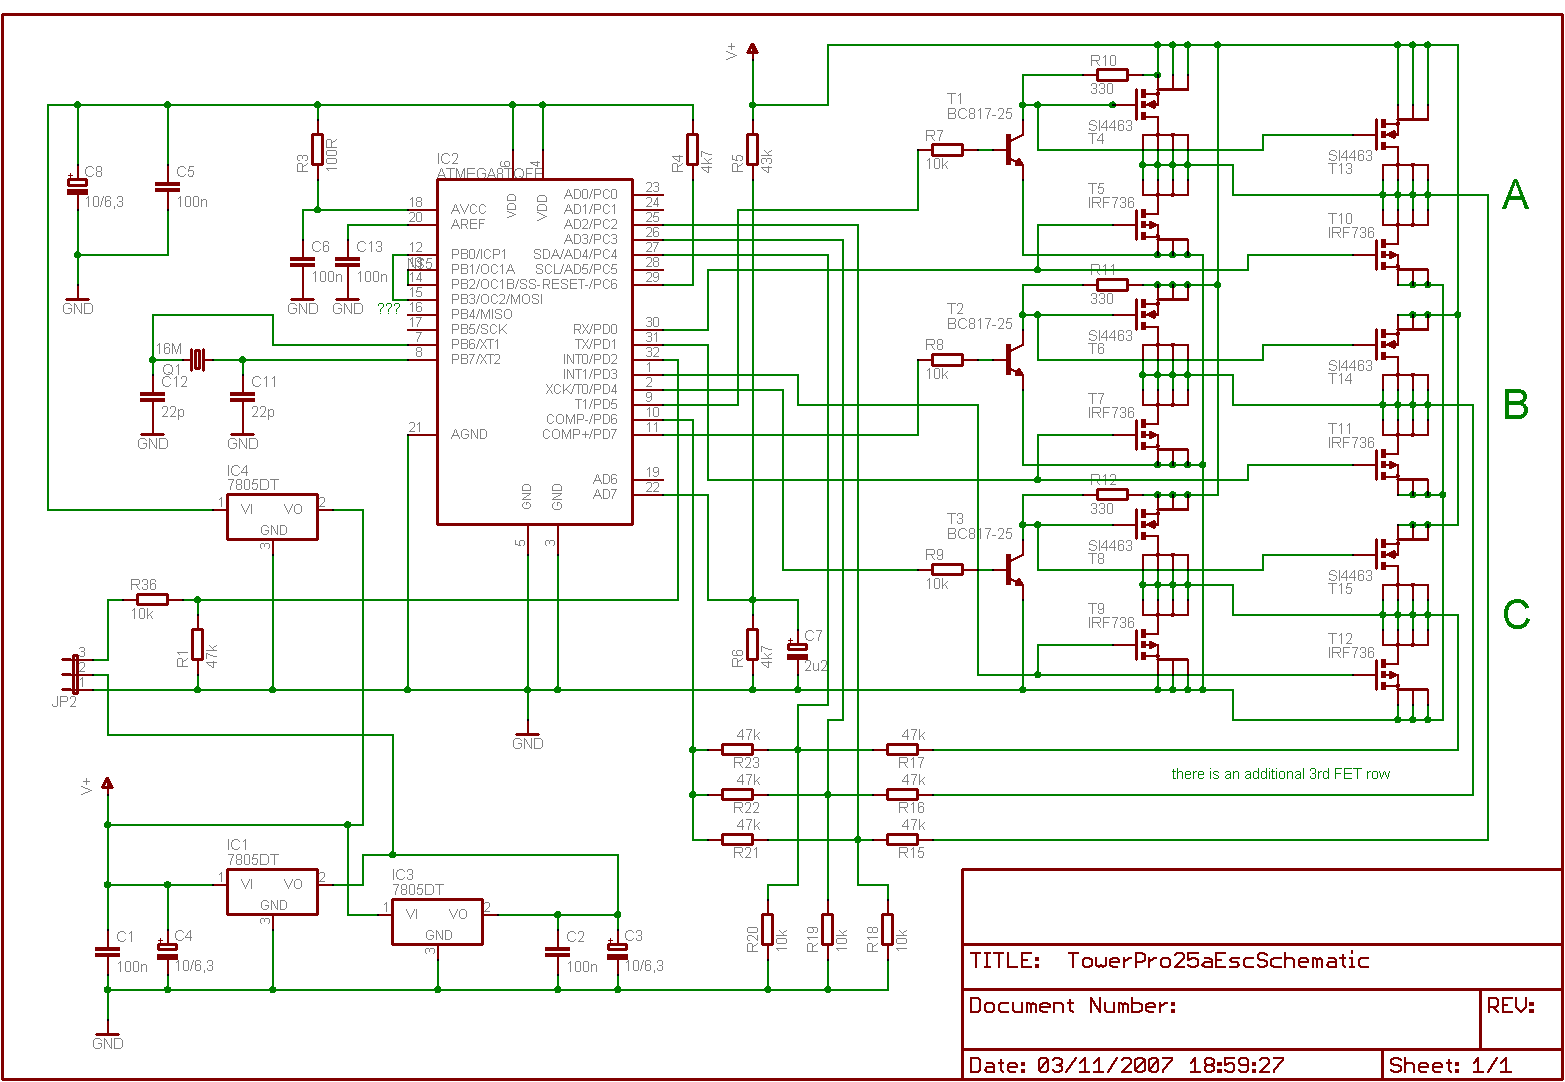 Diy Brushless Motor Controller Schematic Pwm Speed Circuit Using Ic556 Electronic Sd Control Schematics Projects To Mc33025